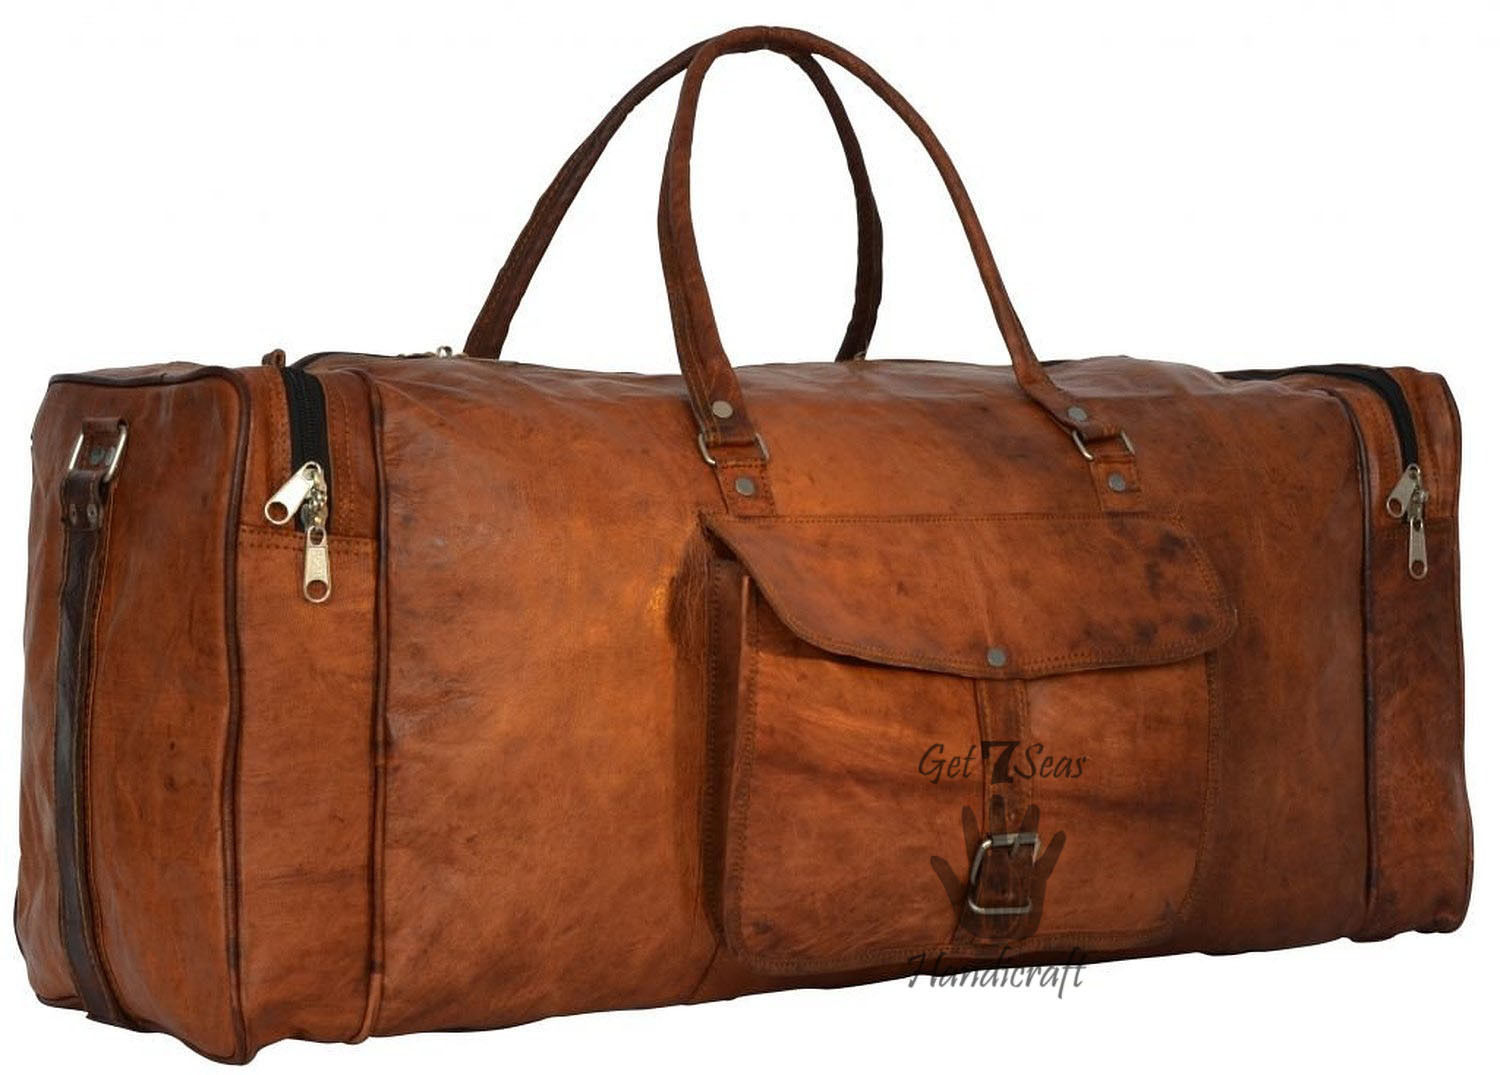 Men's Brown aircabin Vintage Leather overnight Travel Luggage Duffle Gym Bag